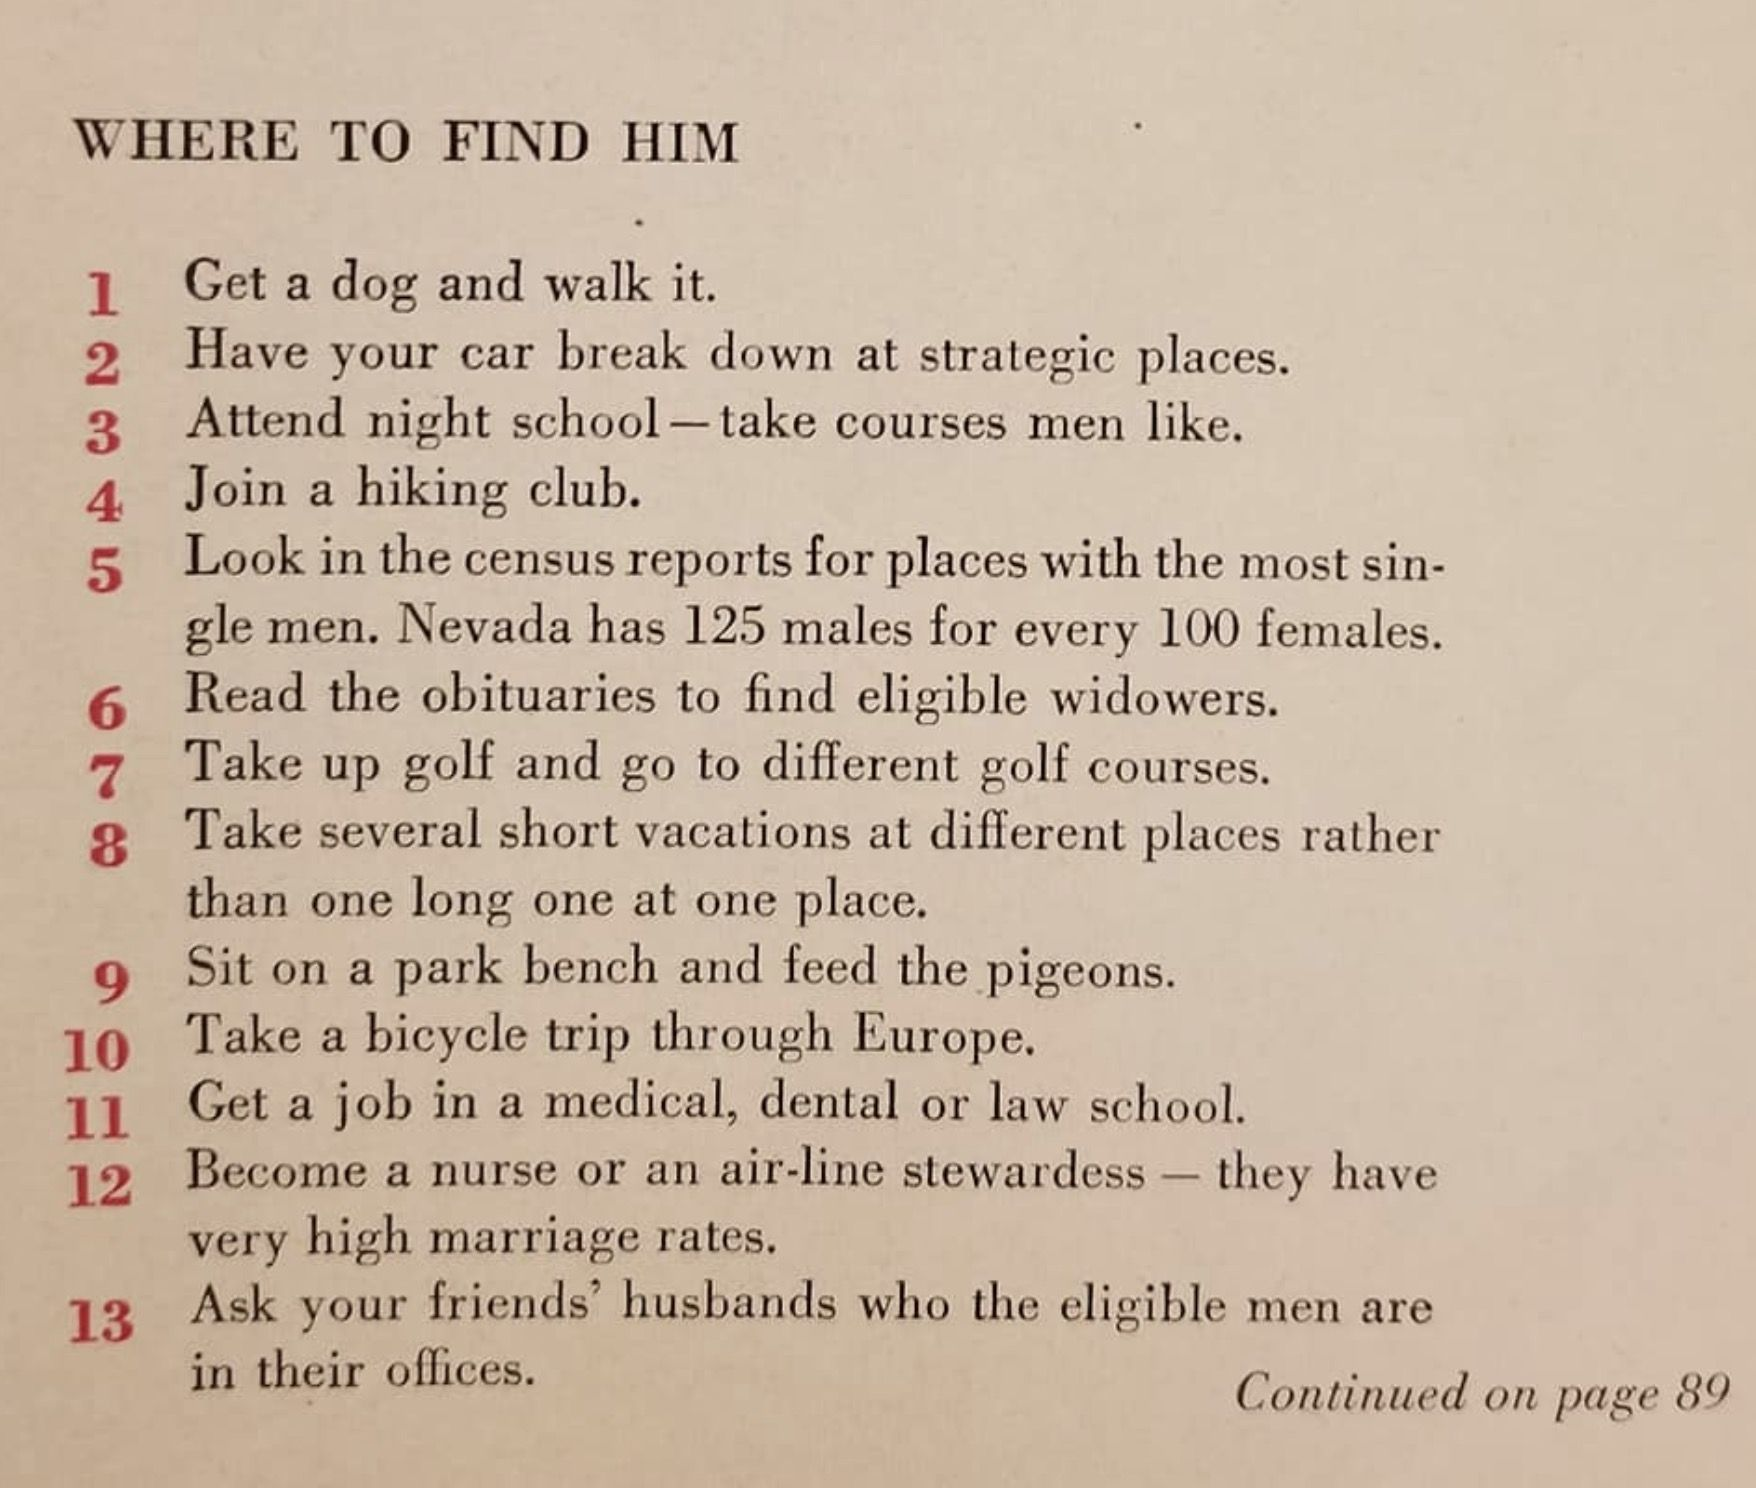 Here Are 129 Ways To Get A Husband, According To A 1958